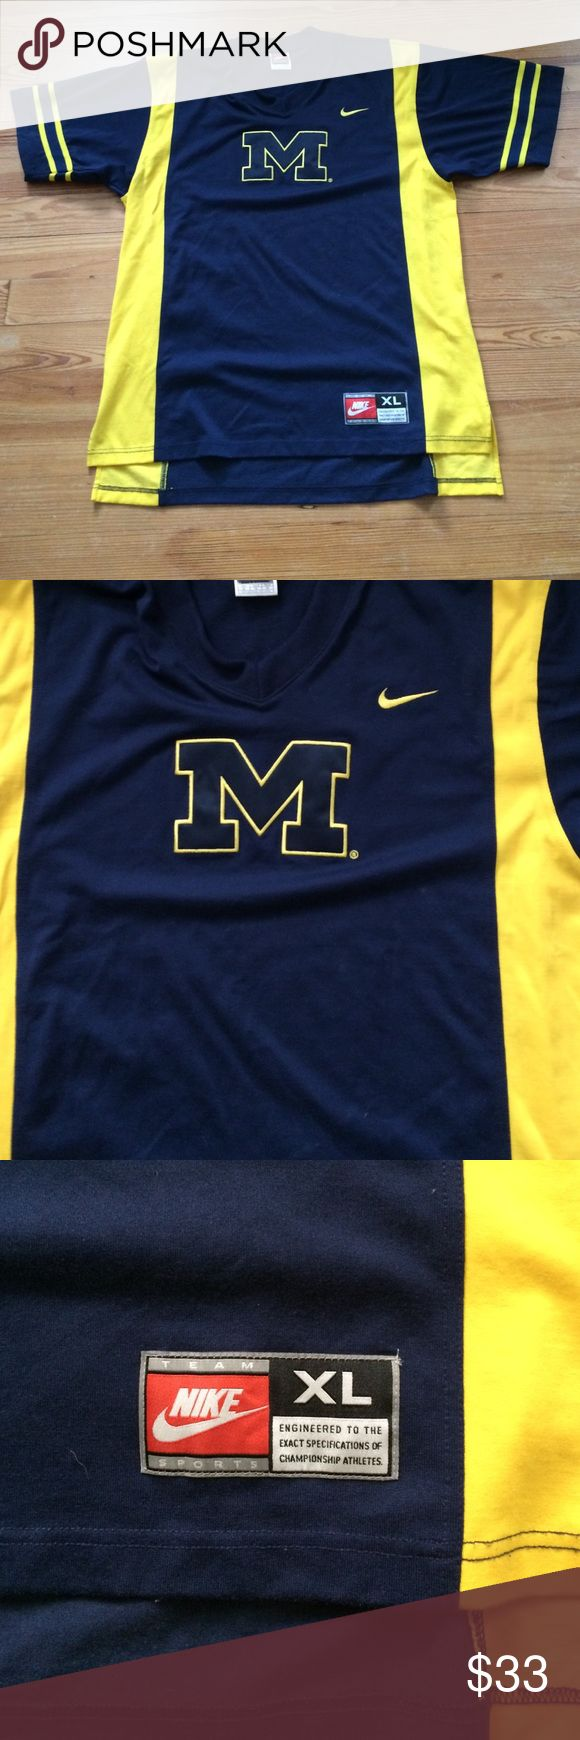 Nike Vintage Michigan Wolverines Basketball Very sweet, Nike Michigan Wolverines men's basketball warmup shirt. Size mens XL, like new, rare! Circa 96, great for any Michigan fan Nike  Tops Tees - Short Sleeve